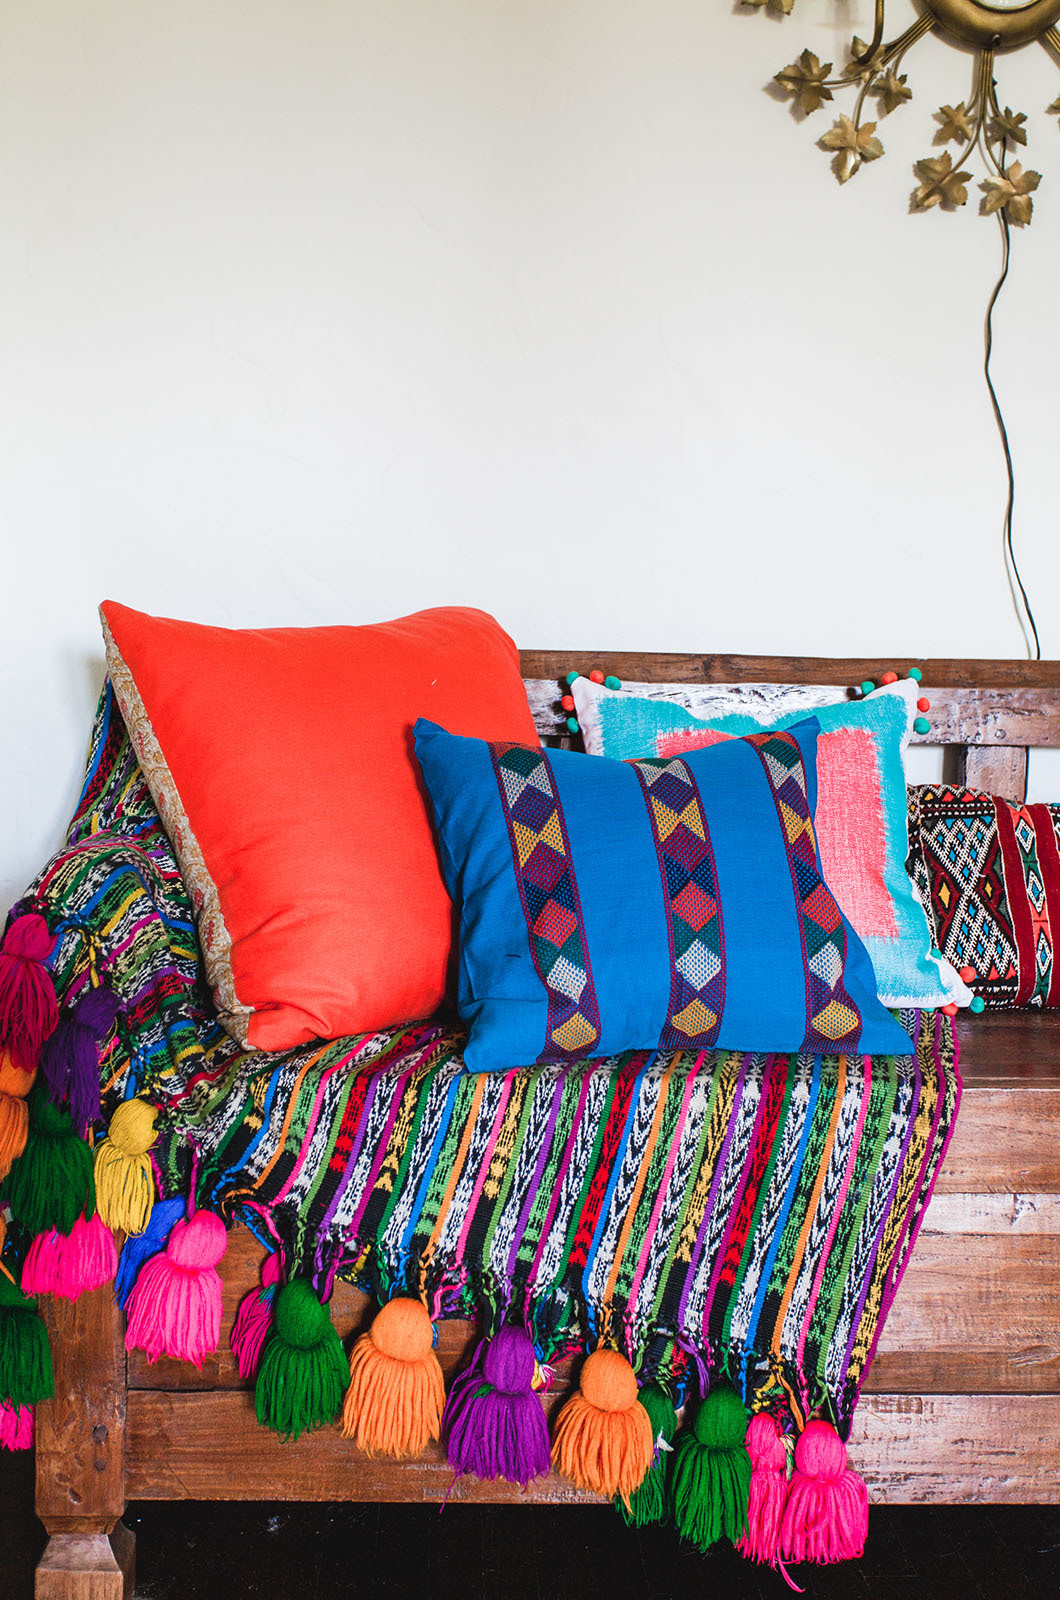 Vintage blankets and pillows are casually displayed atop an Indonesian wooden bench in the living room.